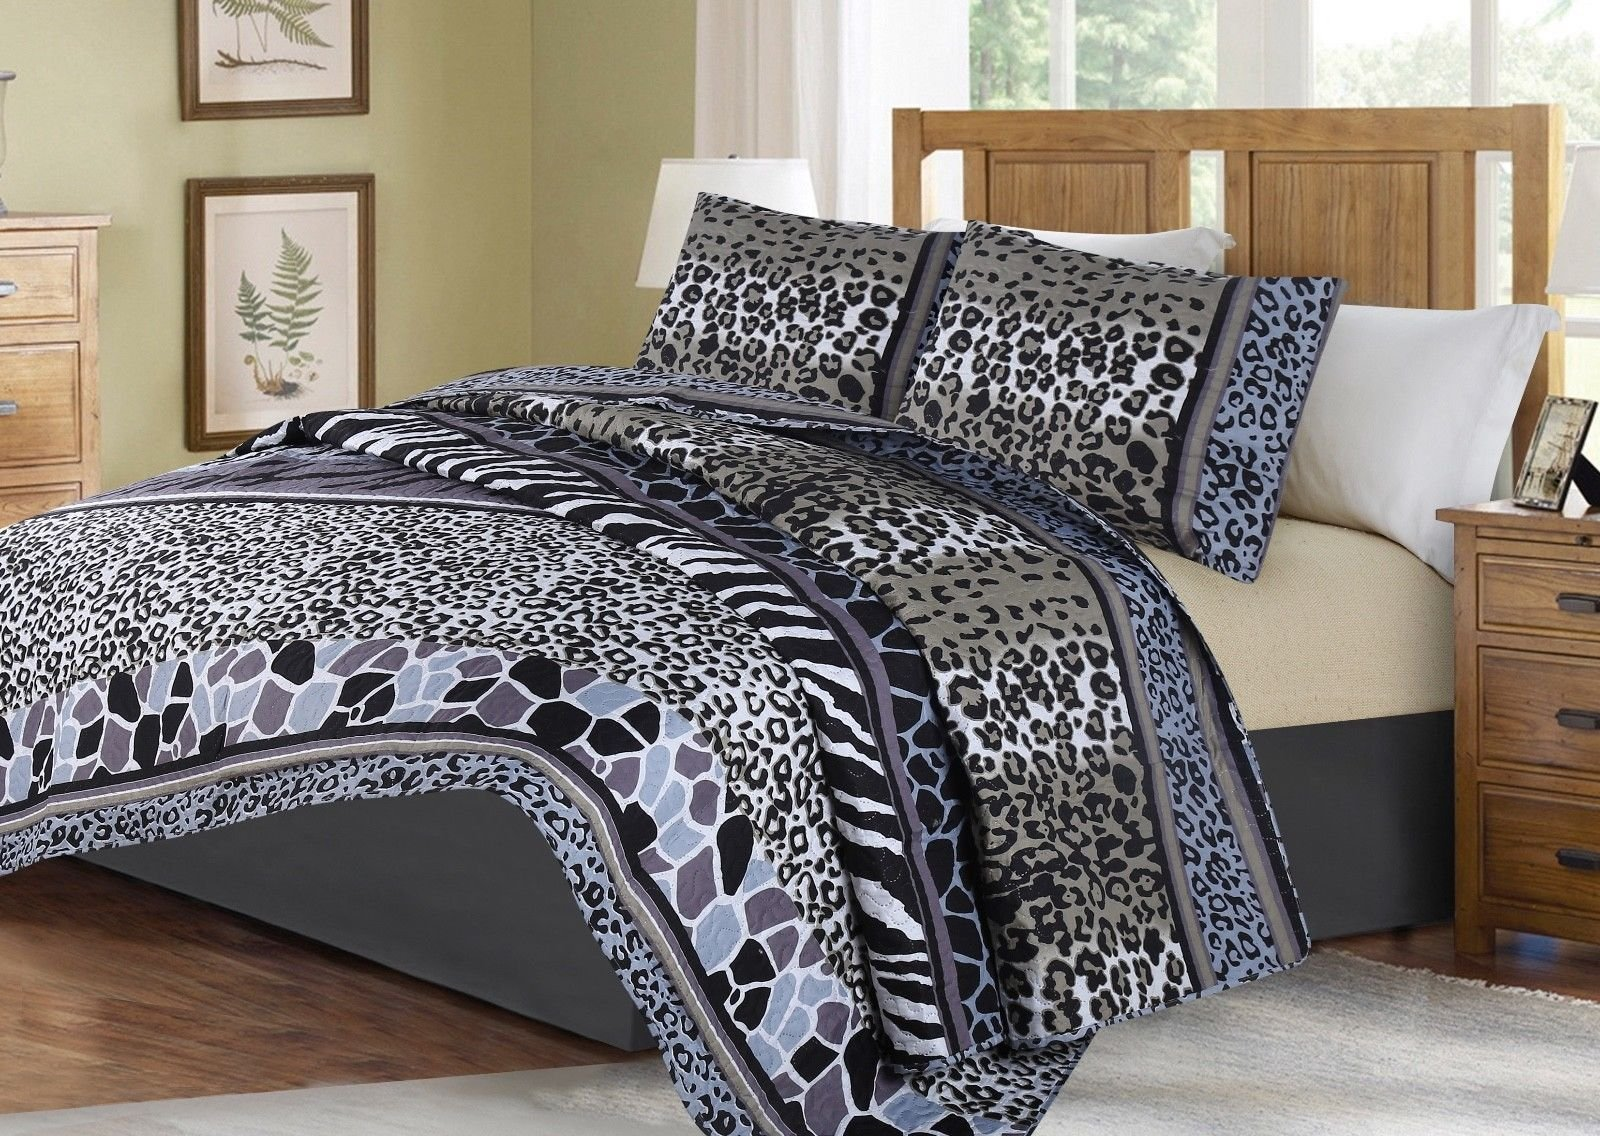 no!no! Printed Animal Designs Bedspread Coverlet Quilt Set with Pillow Shams Animal 6# Size King